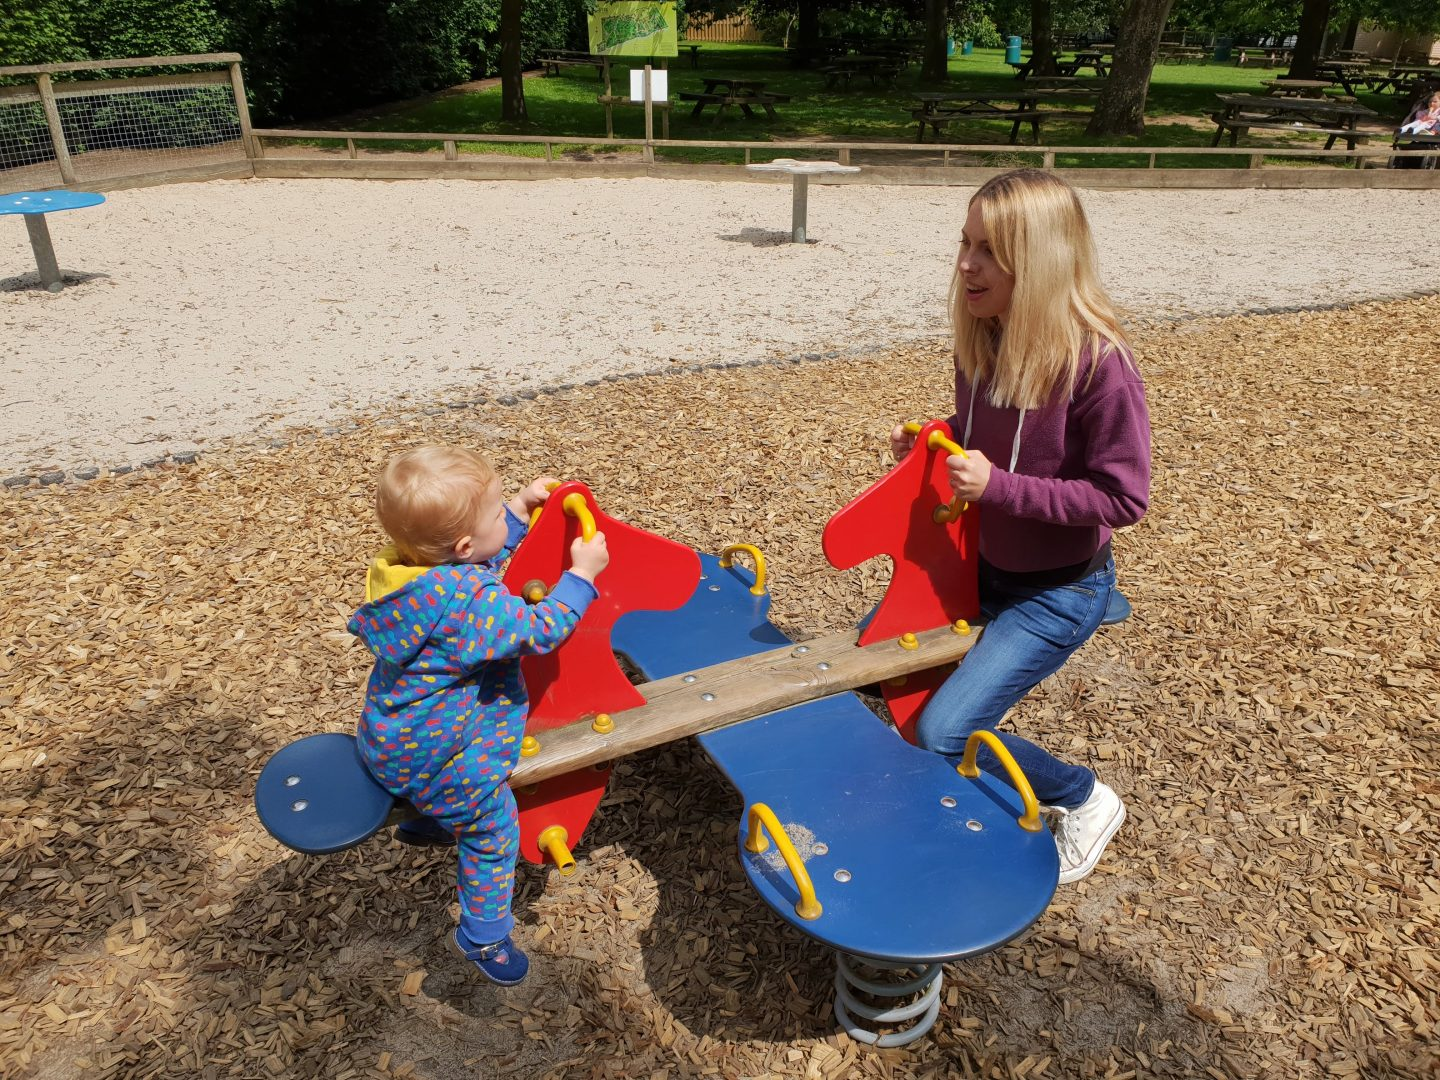 Autumn and Mummy on the seesaw at Howletts in Canterbury, Kent